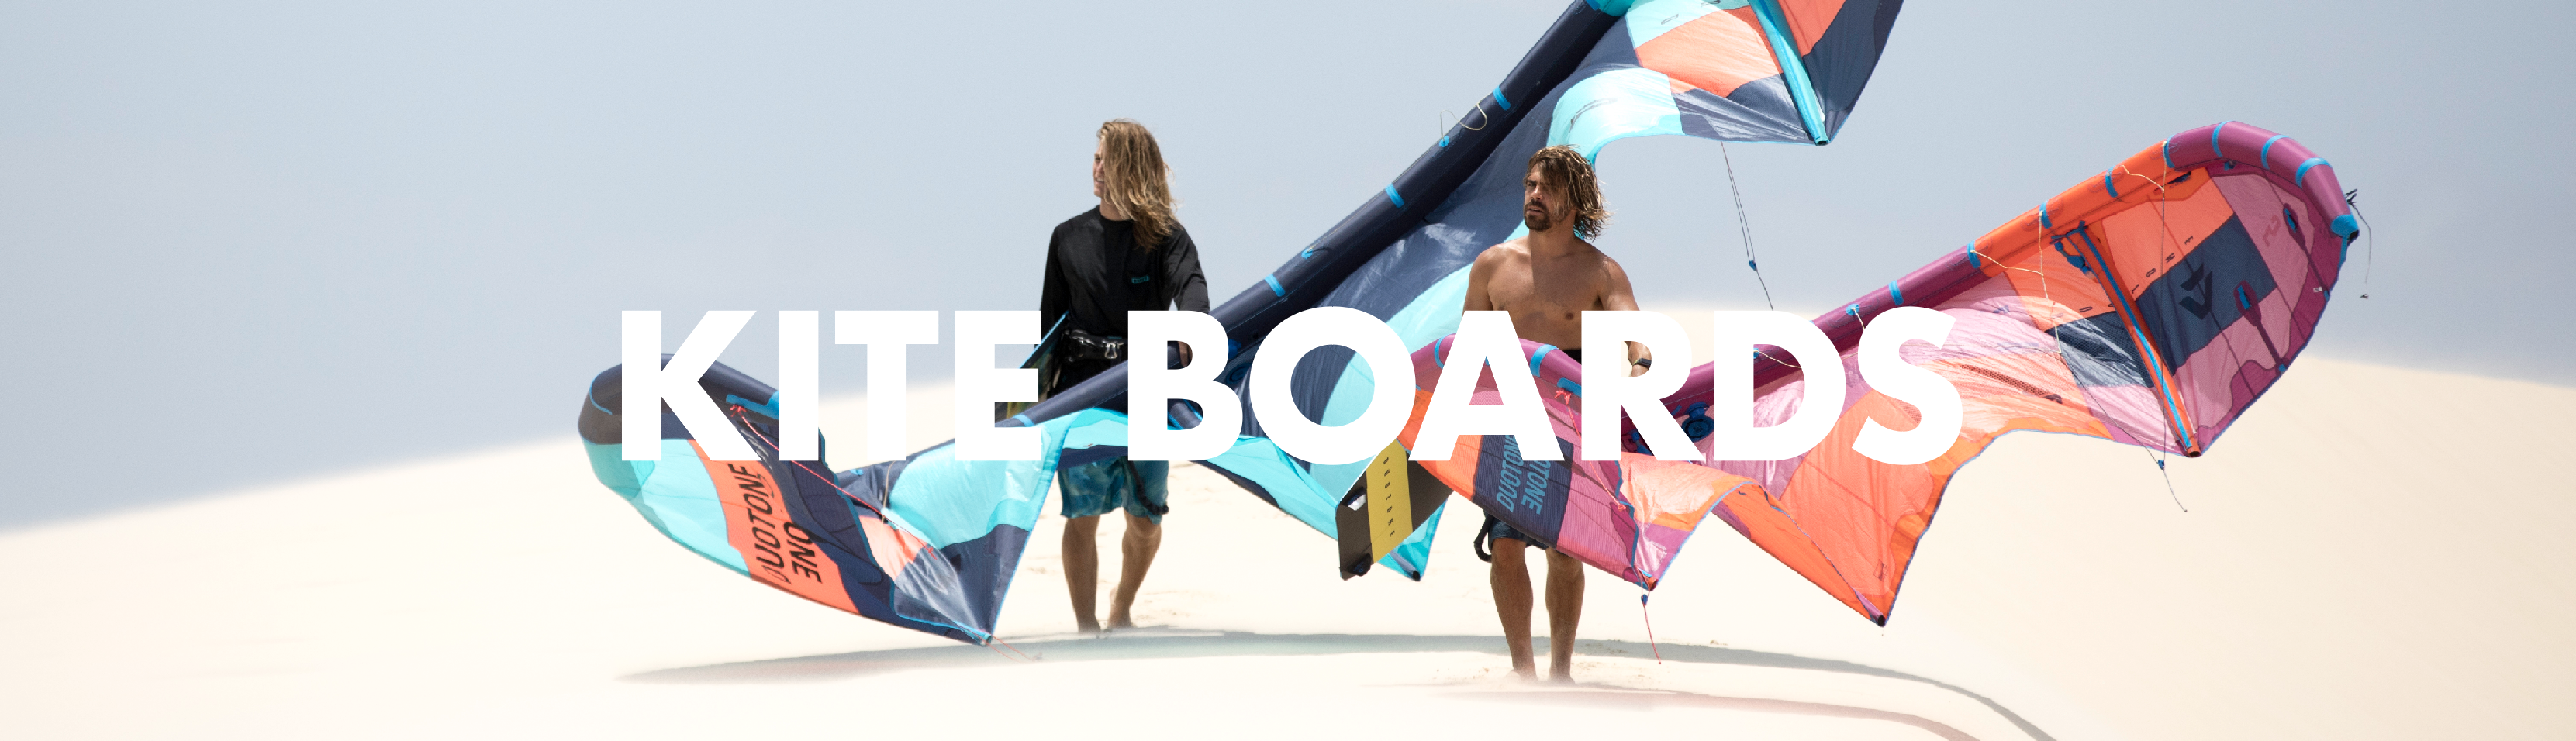 Kite surfboards - Surf og ski Horsens